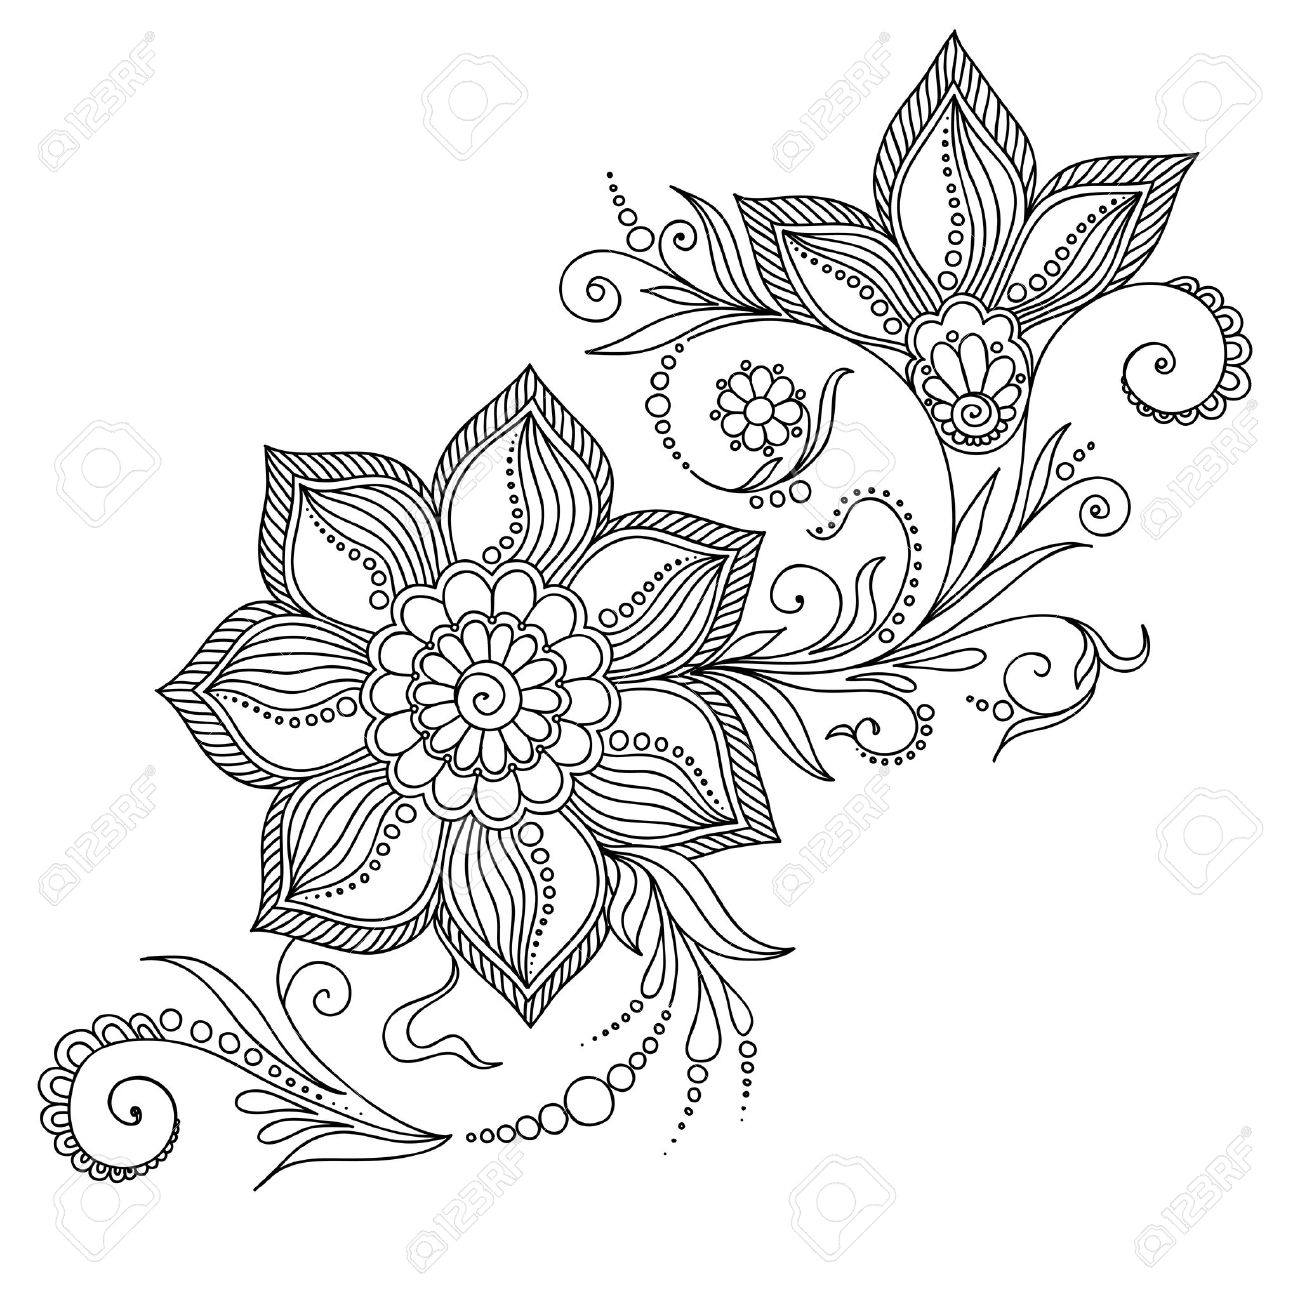 pattern for coloring book coloring book pages for kids and adults